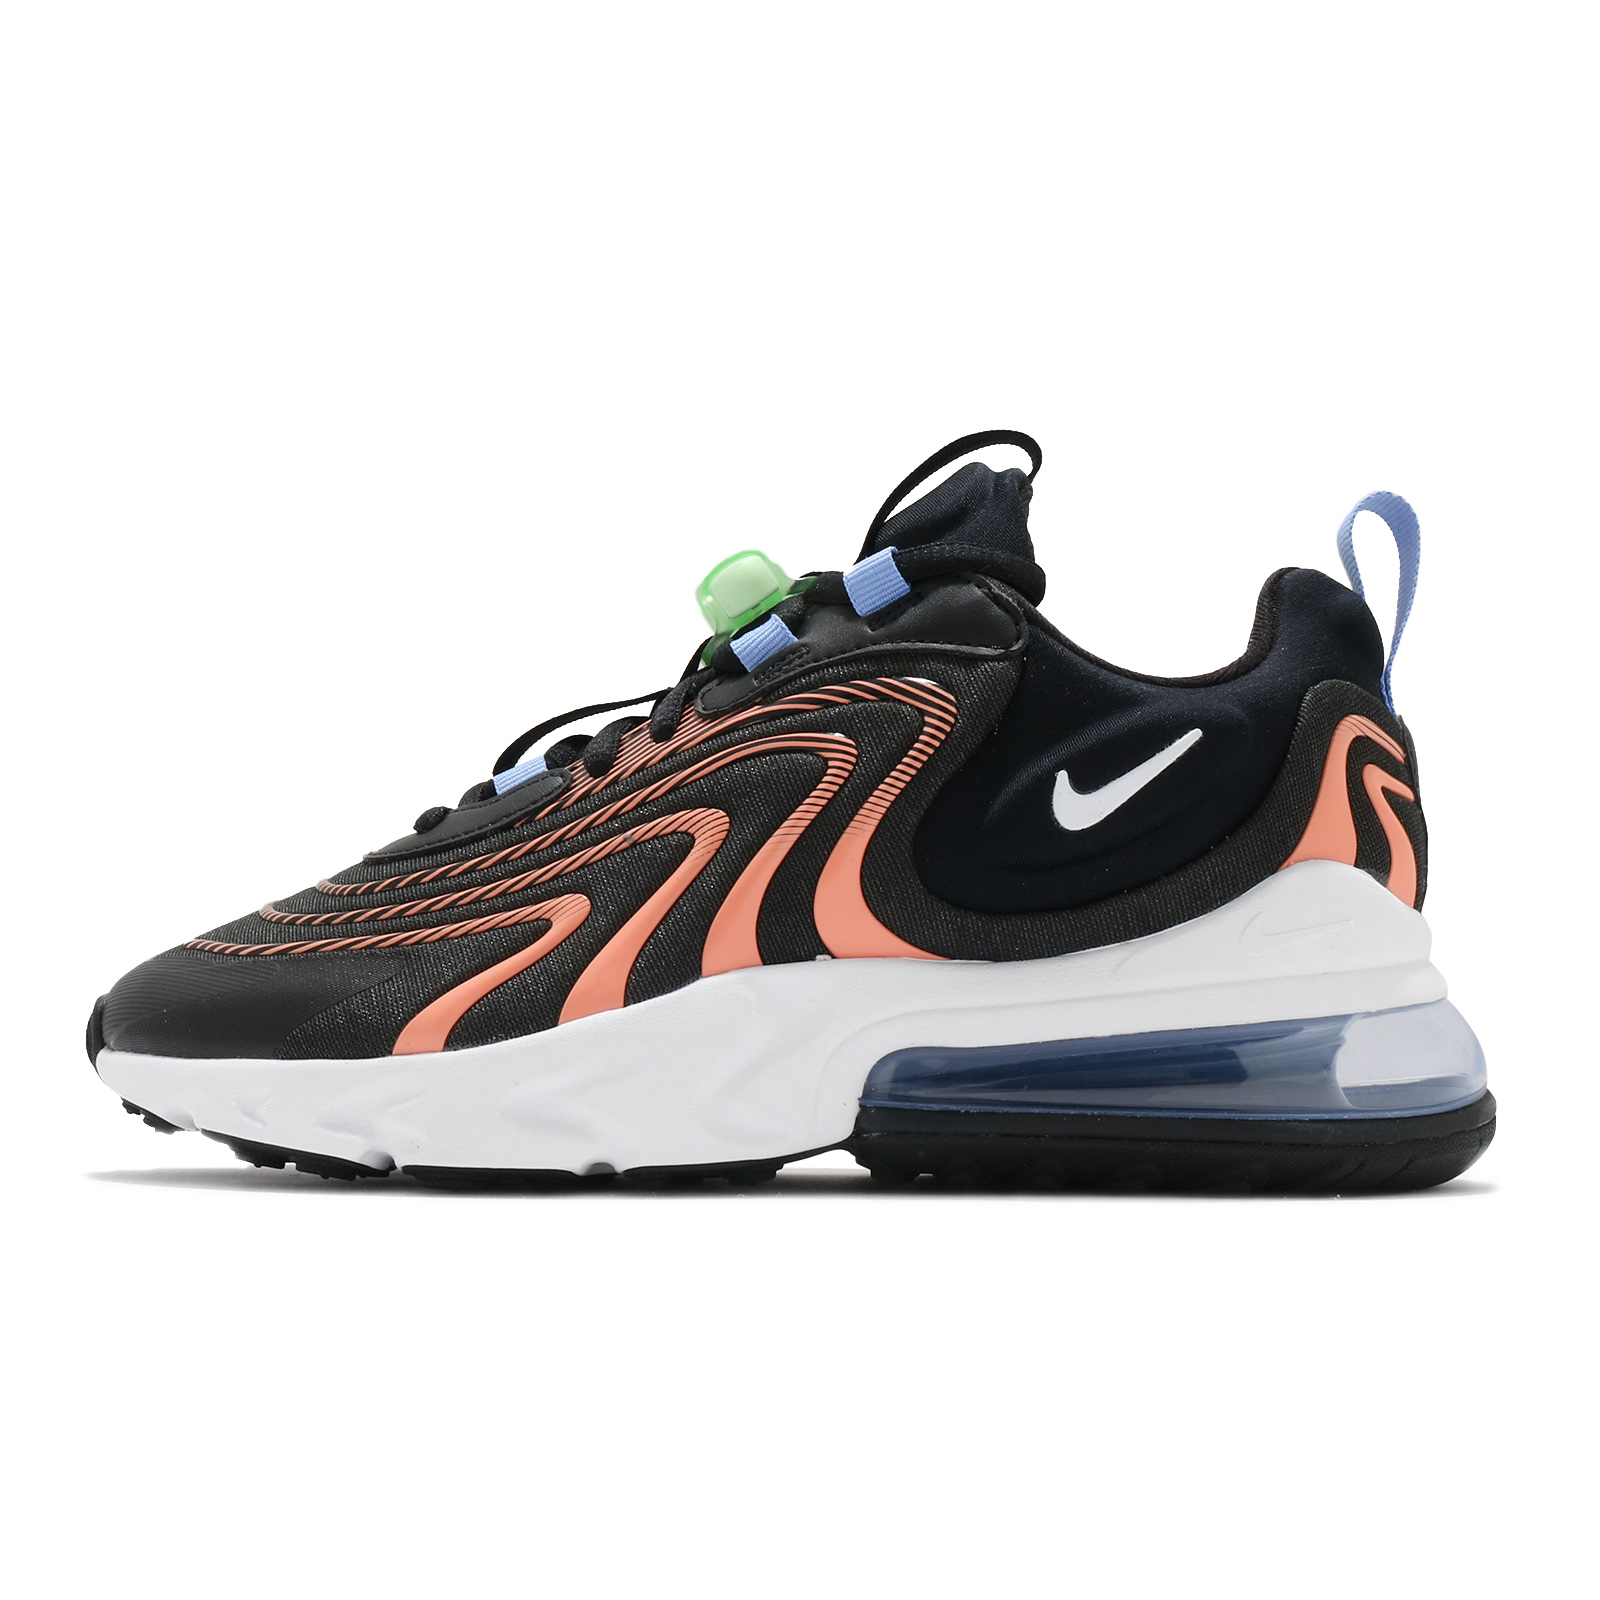 Nike Wmns Air Max 270 React ENG 黑 橘 綠 女鞋 氣墊 【ACS】 CW8605-001